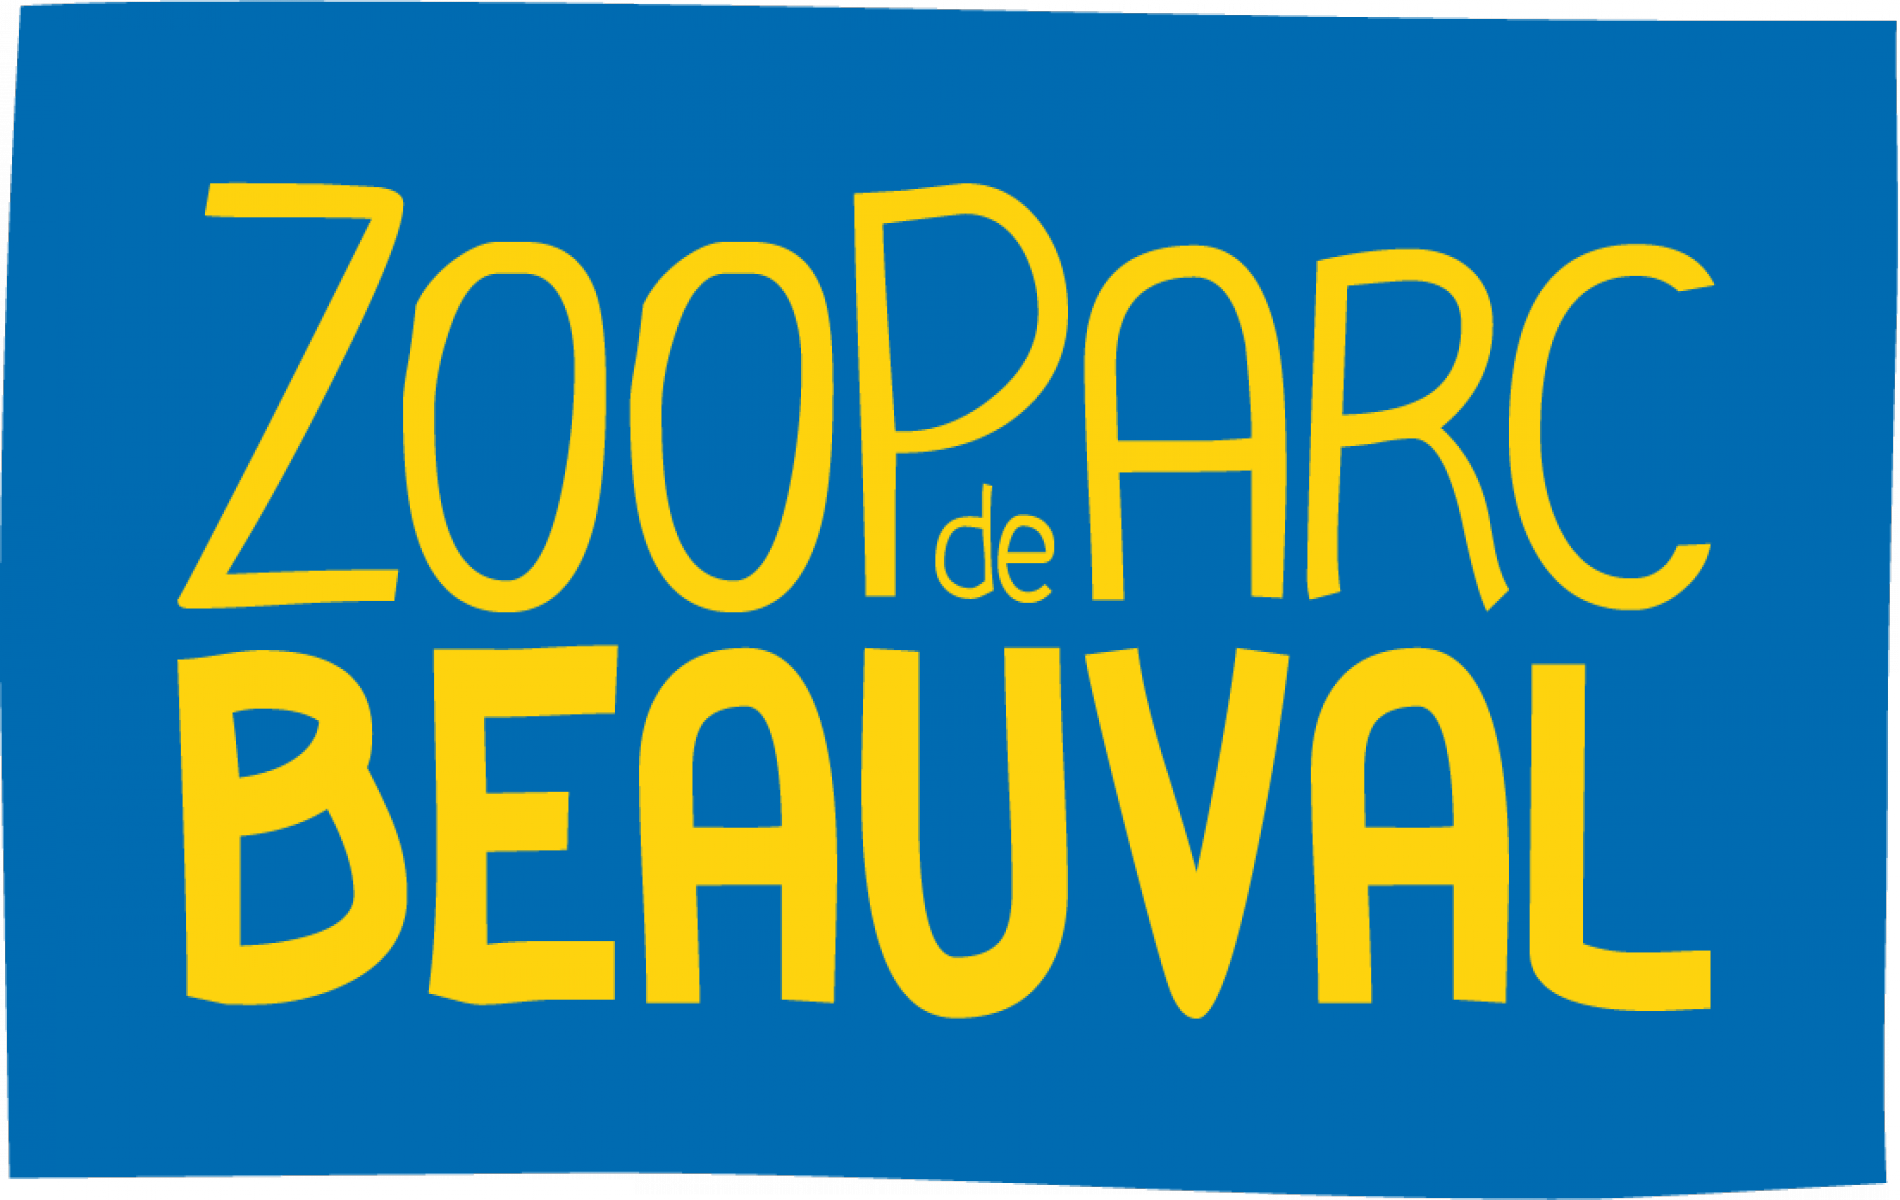 Zoo de beauval logis h tel luccotel for Appart hotel zoo de beauval